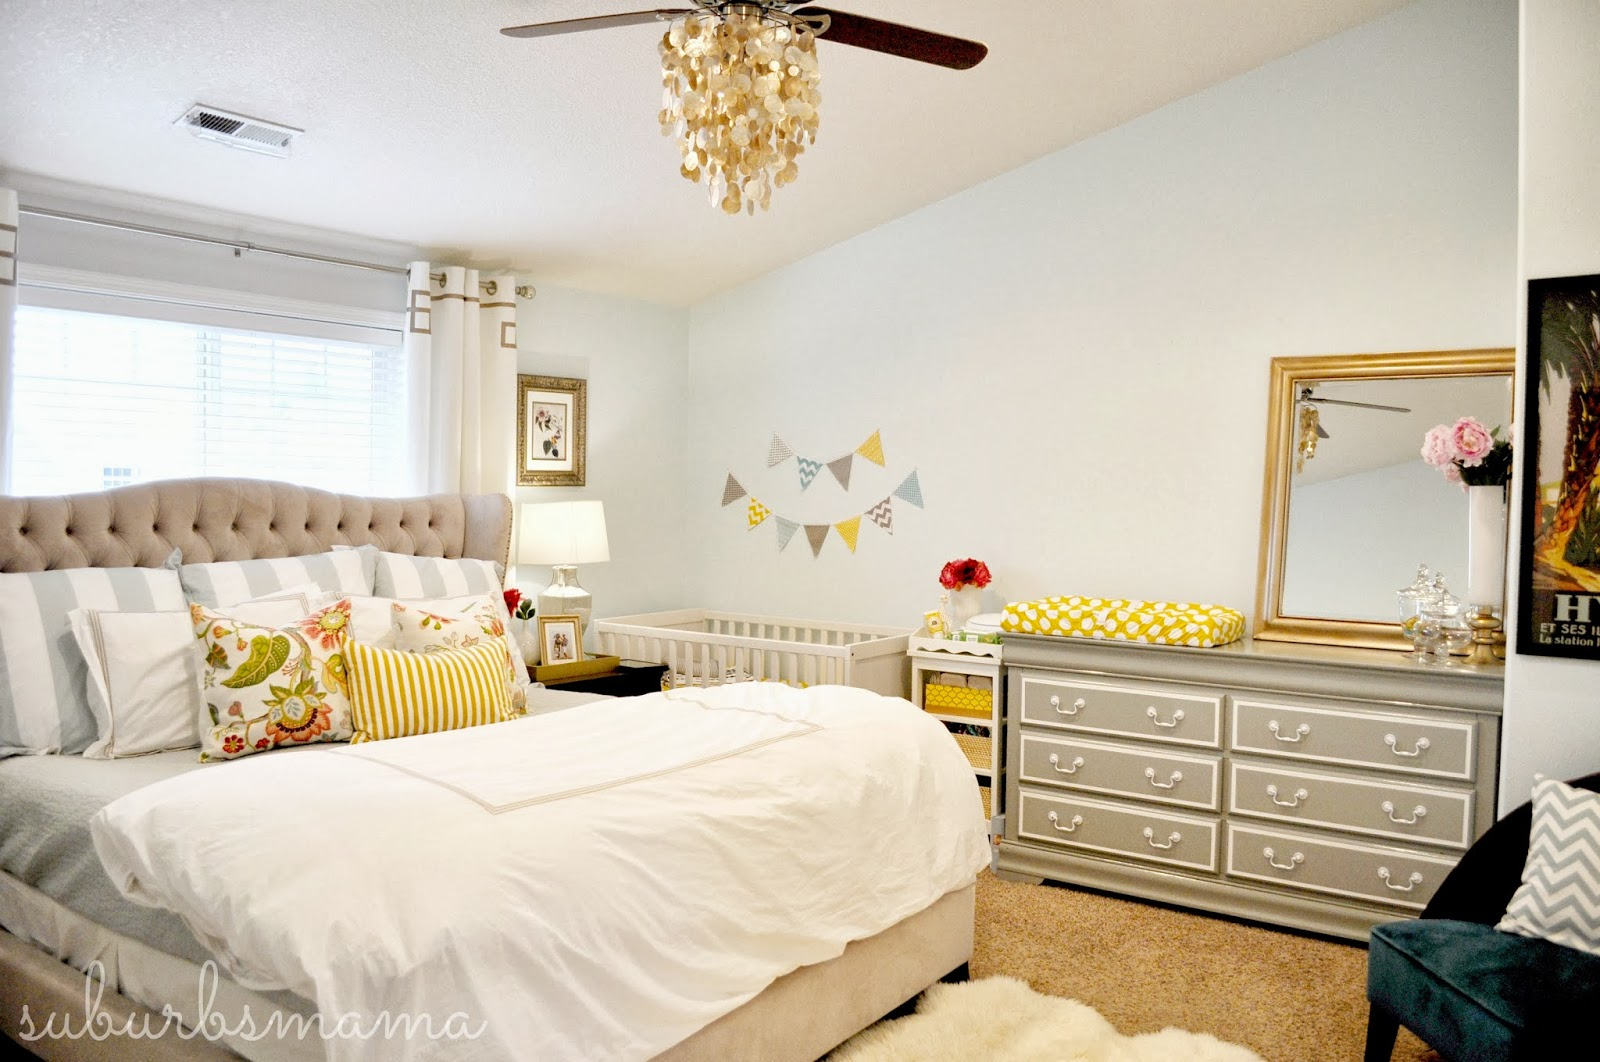 Small Master Bedroom Solutions suburbs mama: nursery in master bedroom